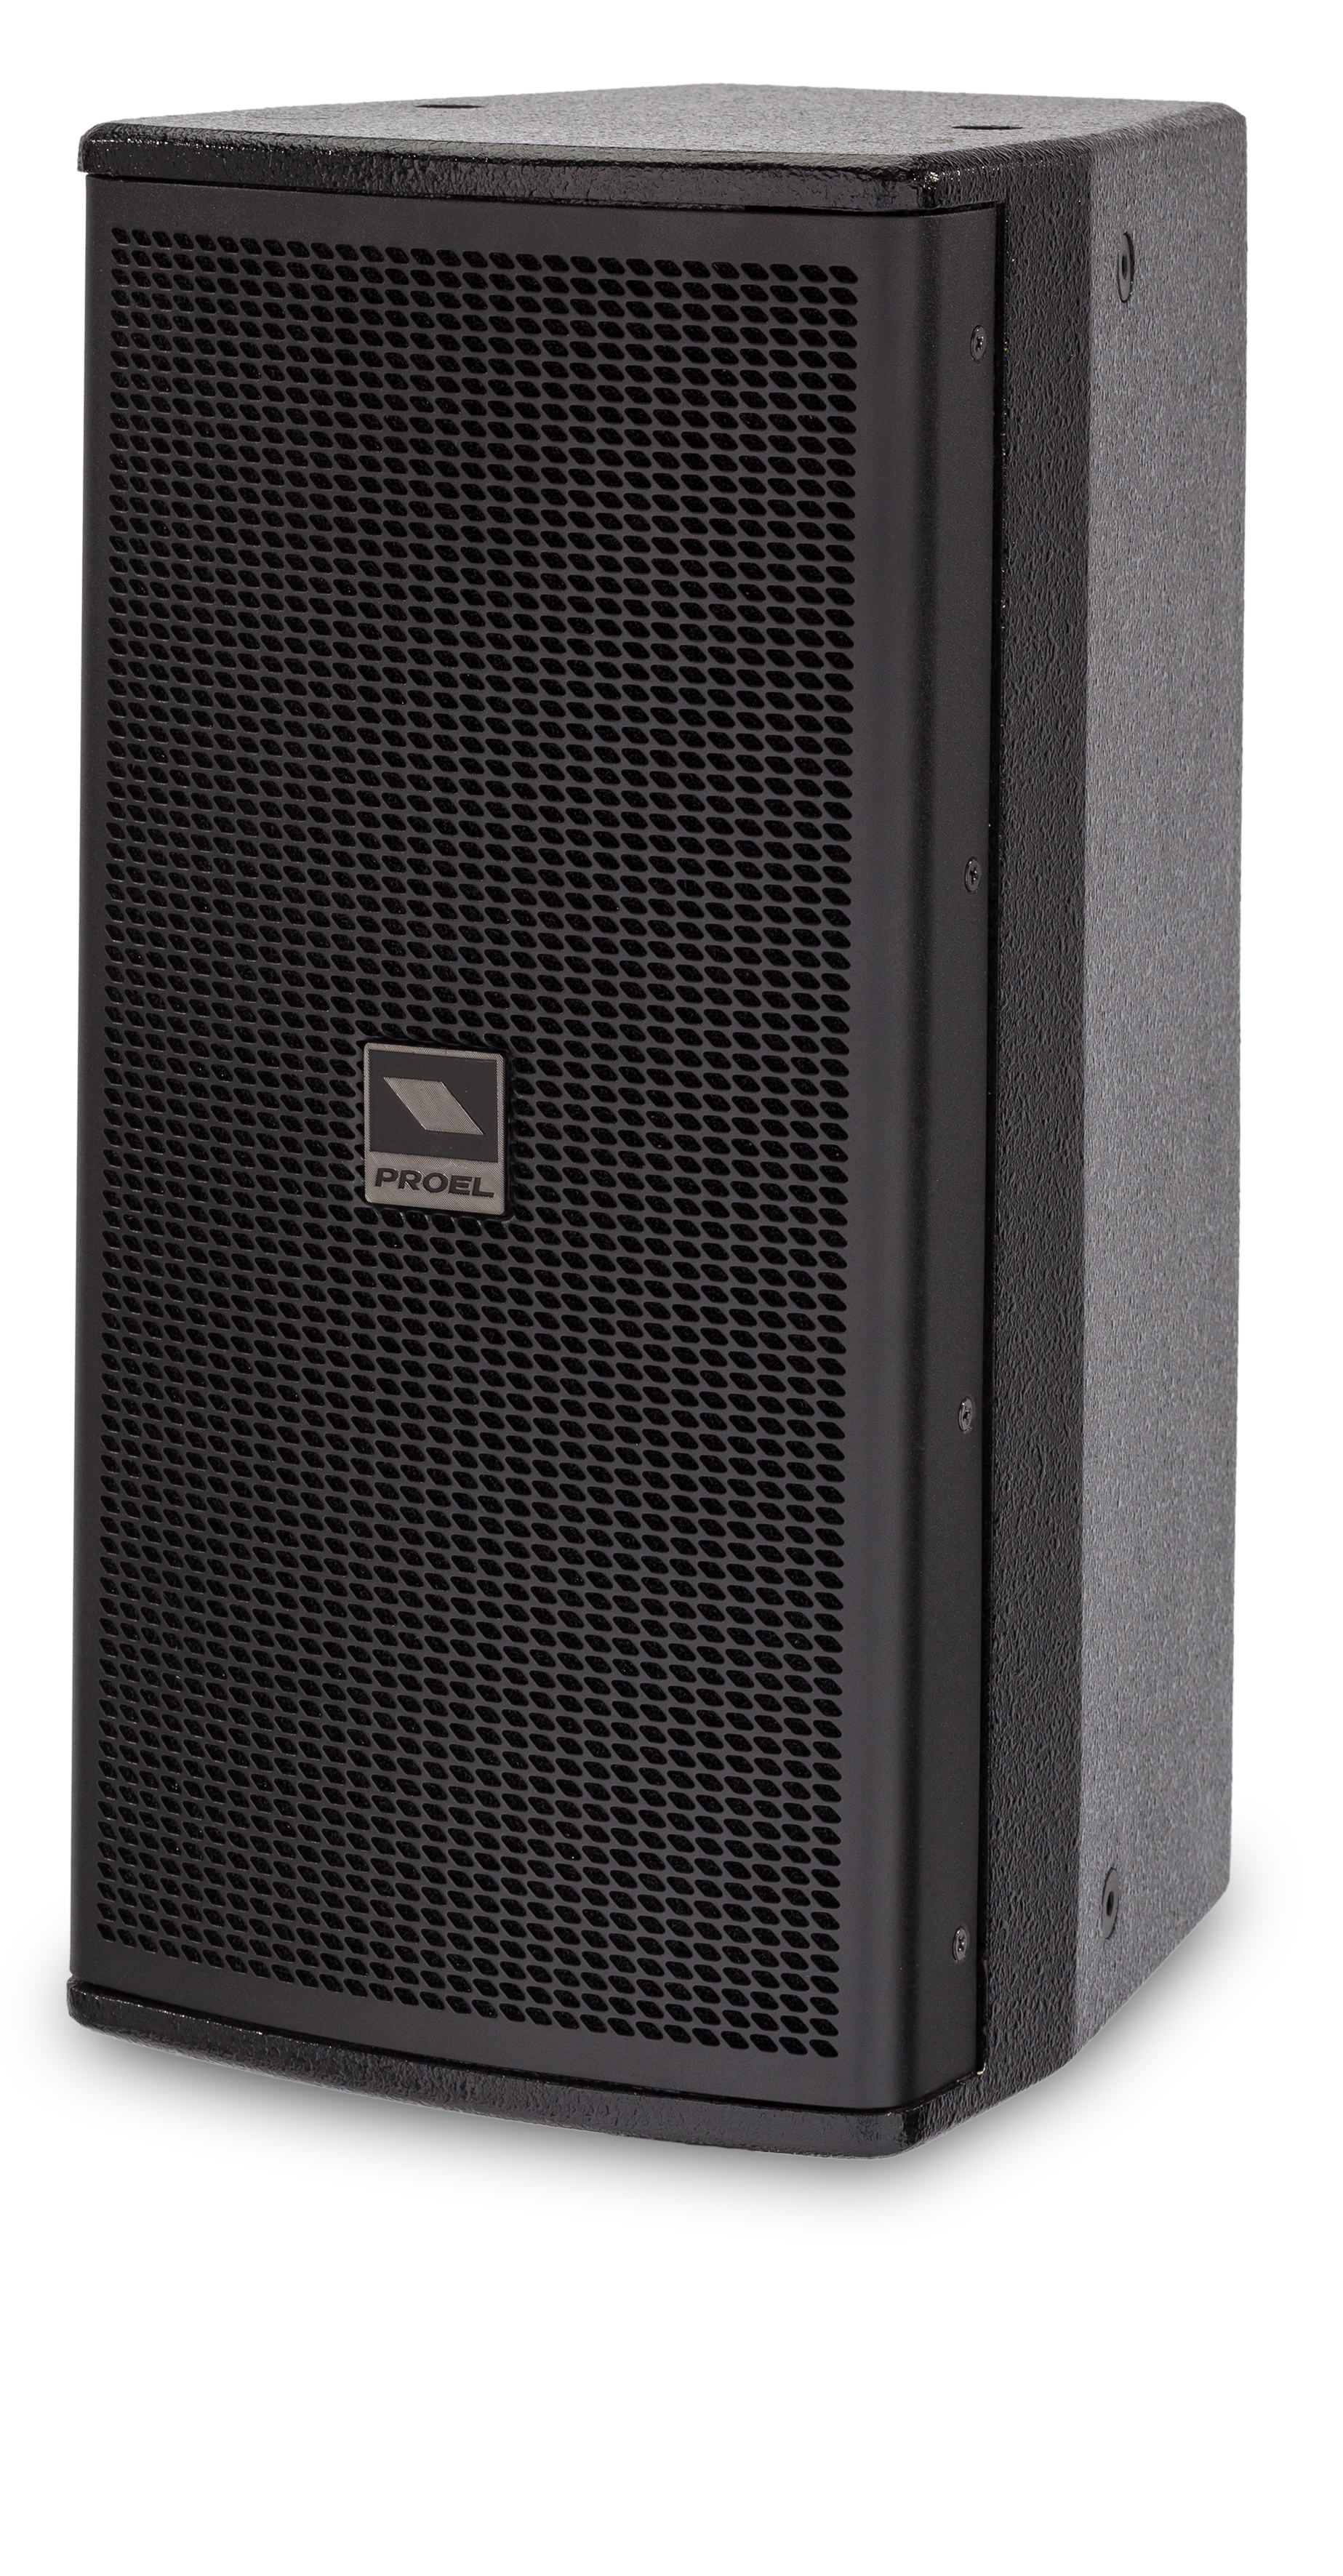 PROEL LT8A - Active 2-way loudspeaker systems